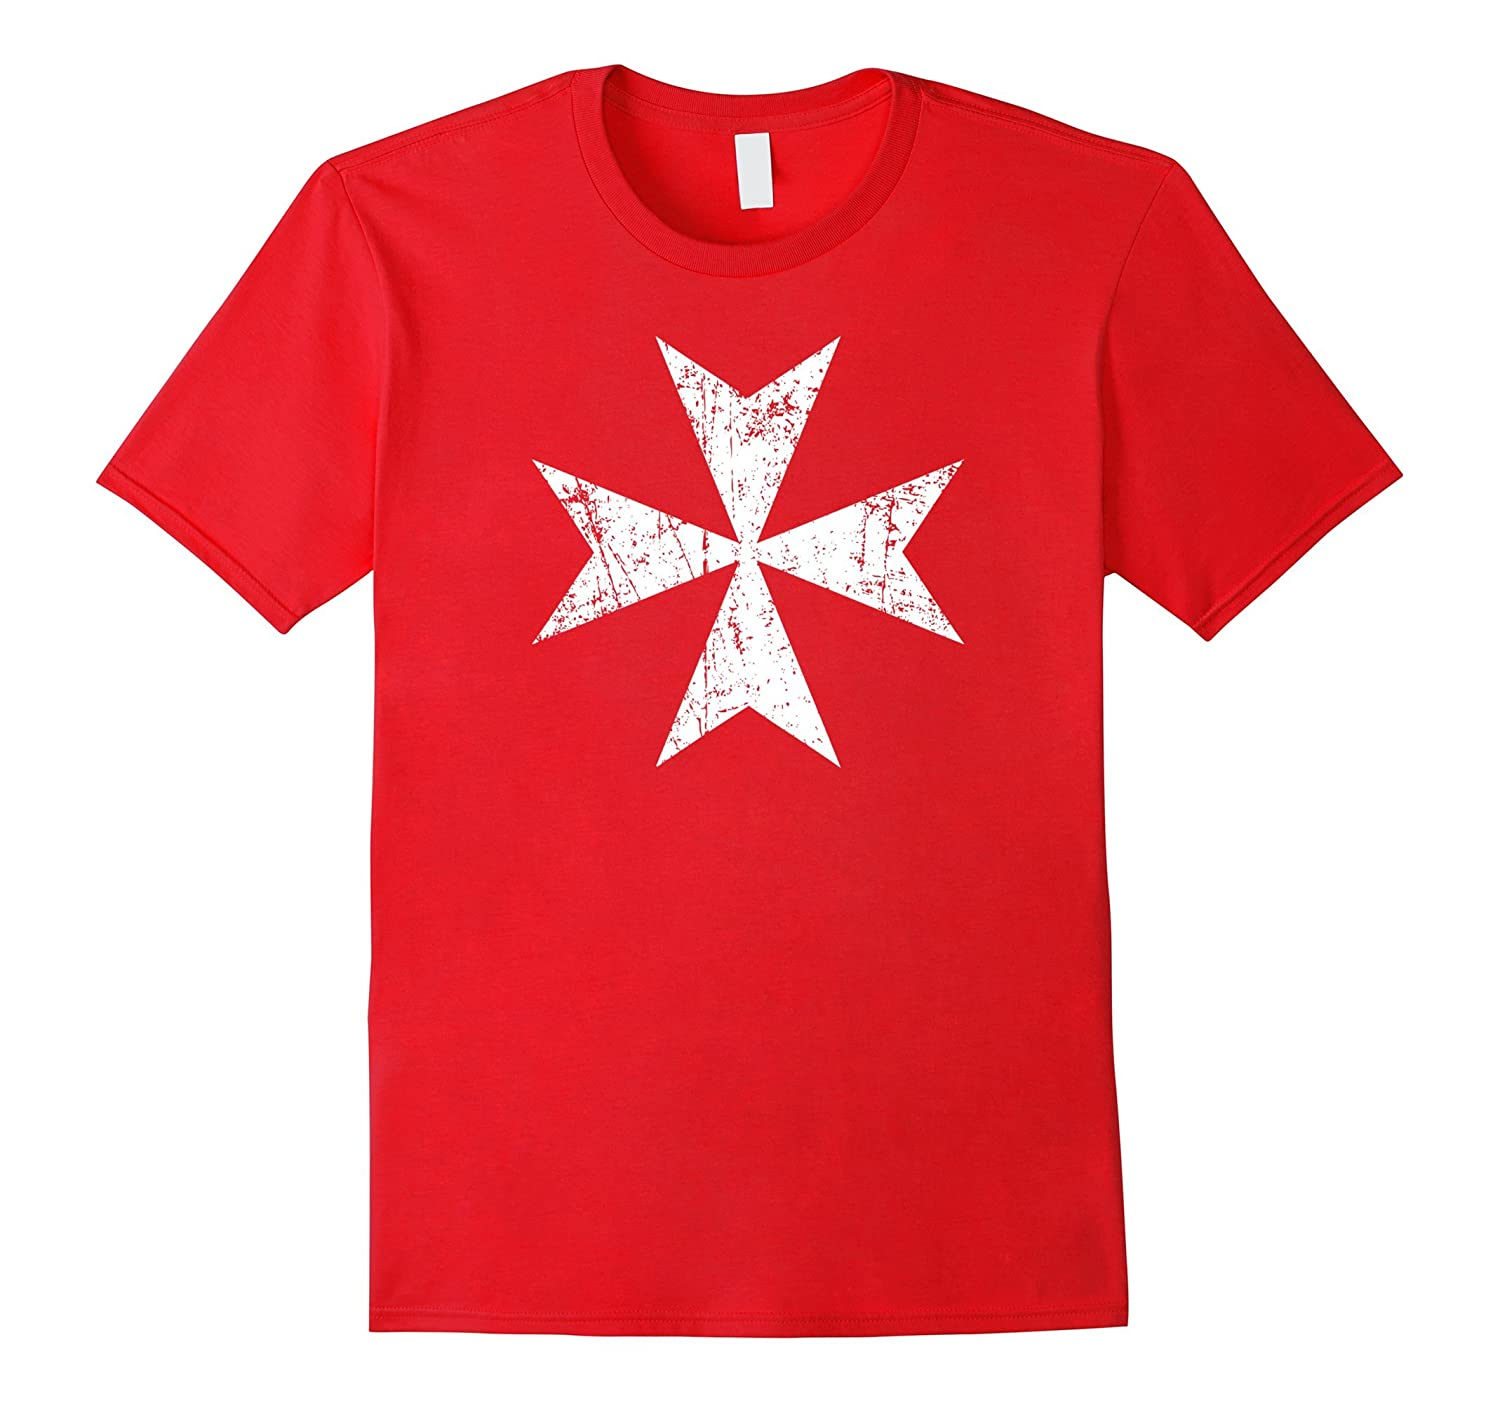 Maltese Cross T-shirt - Distressed white print Malta cross-CD